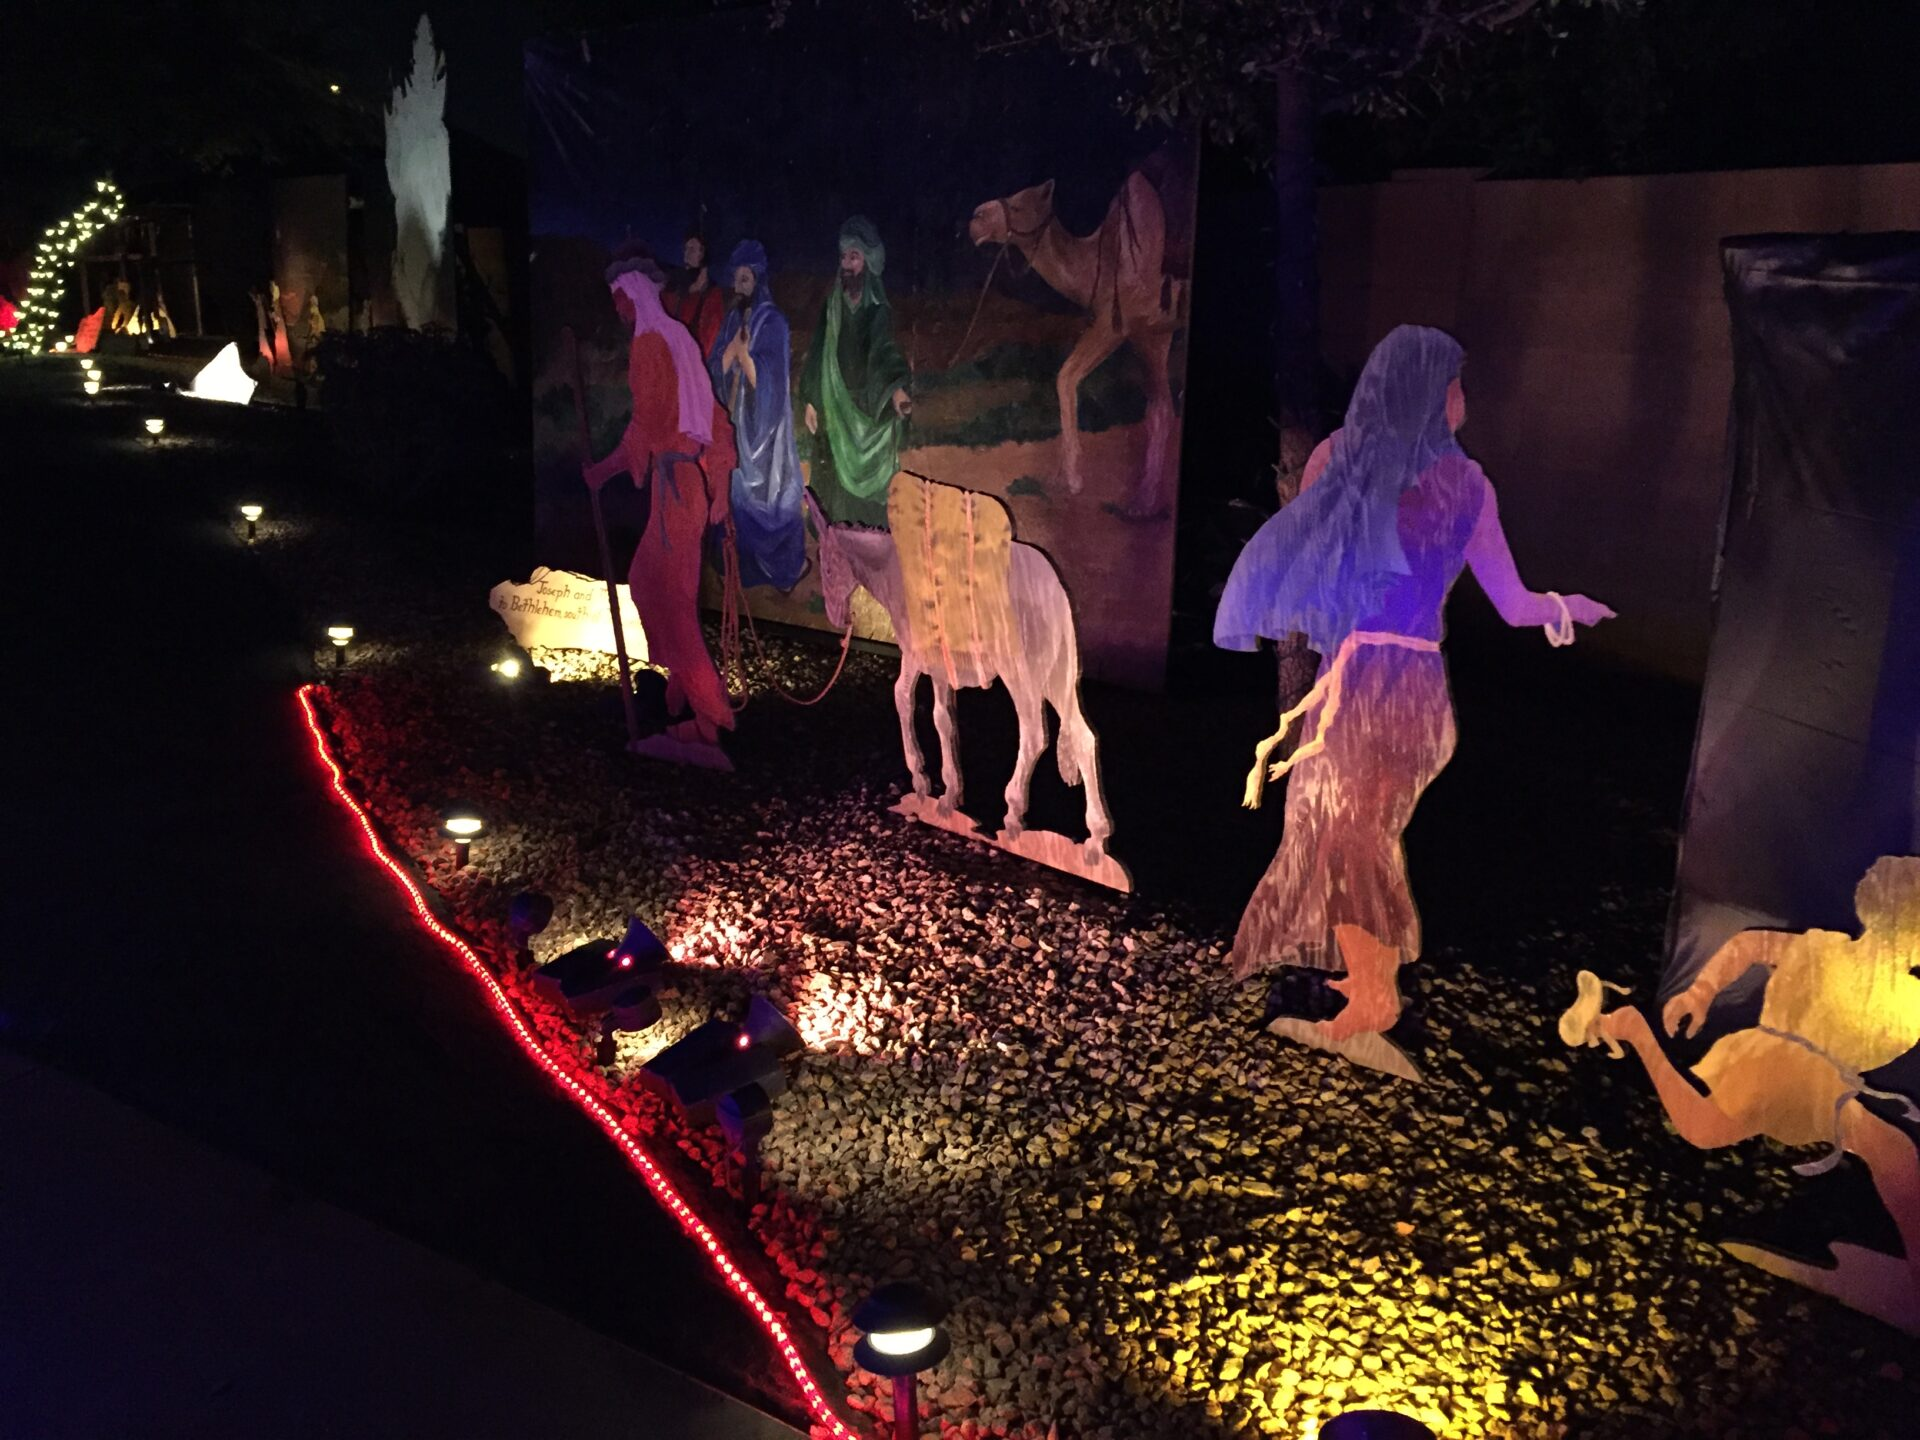 Pastor Roger Ball of First Baptist Church of Tempe, along with dozens of volunteers, has transformed his backyard into a 'Walk to Bethlehem.'